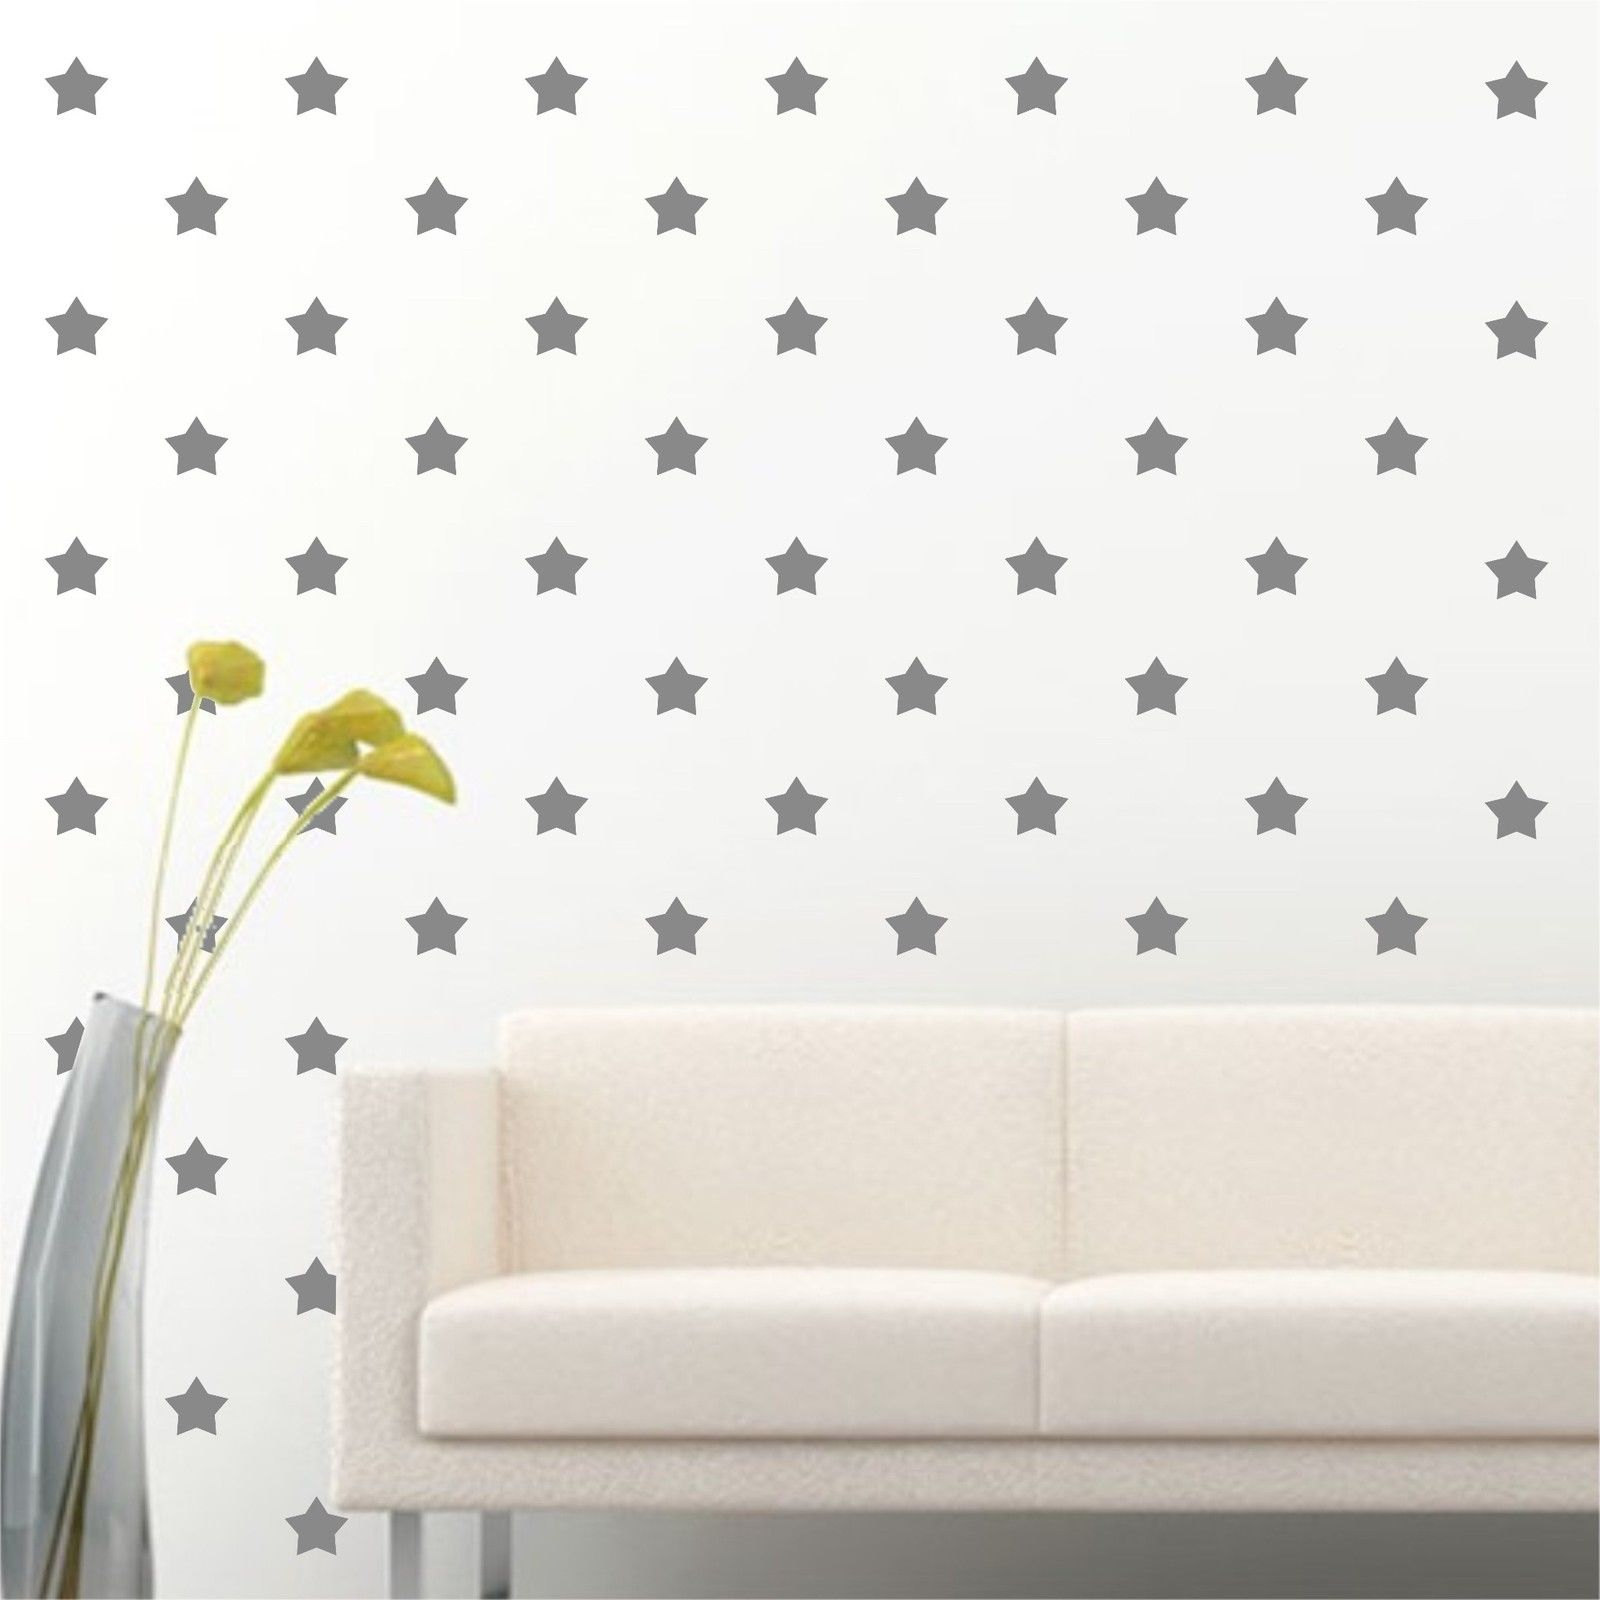 Gorgeous 10 star wall decor design decoration of set of 12 5 star wall decor popular silver star wall decor buy cheap silver star wall decor amipublicfo Choice Image